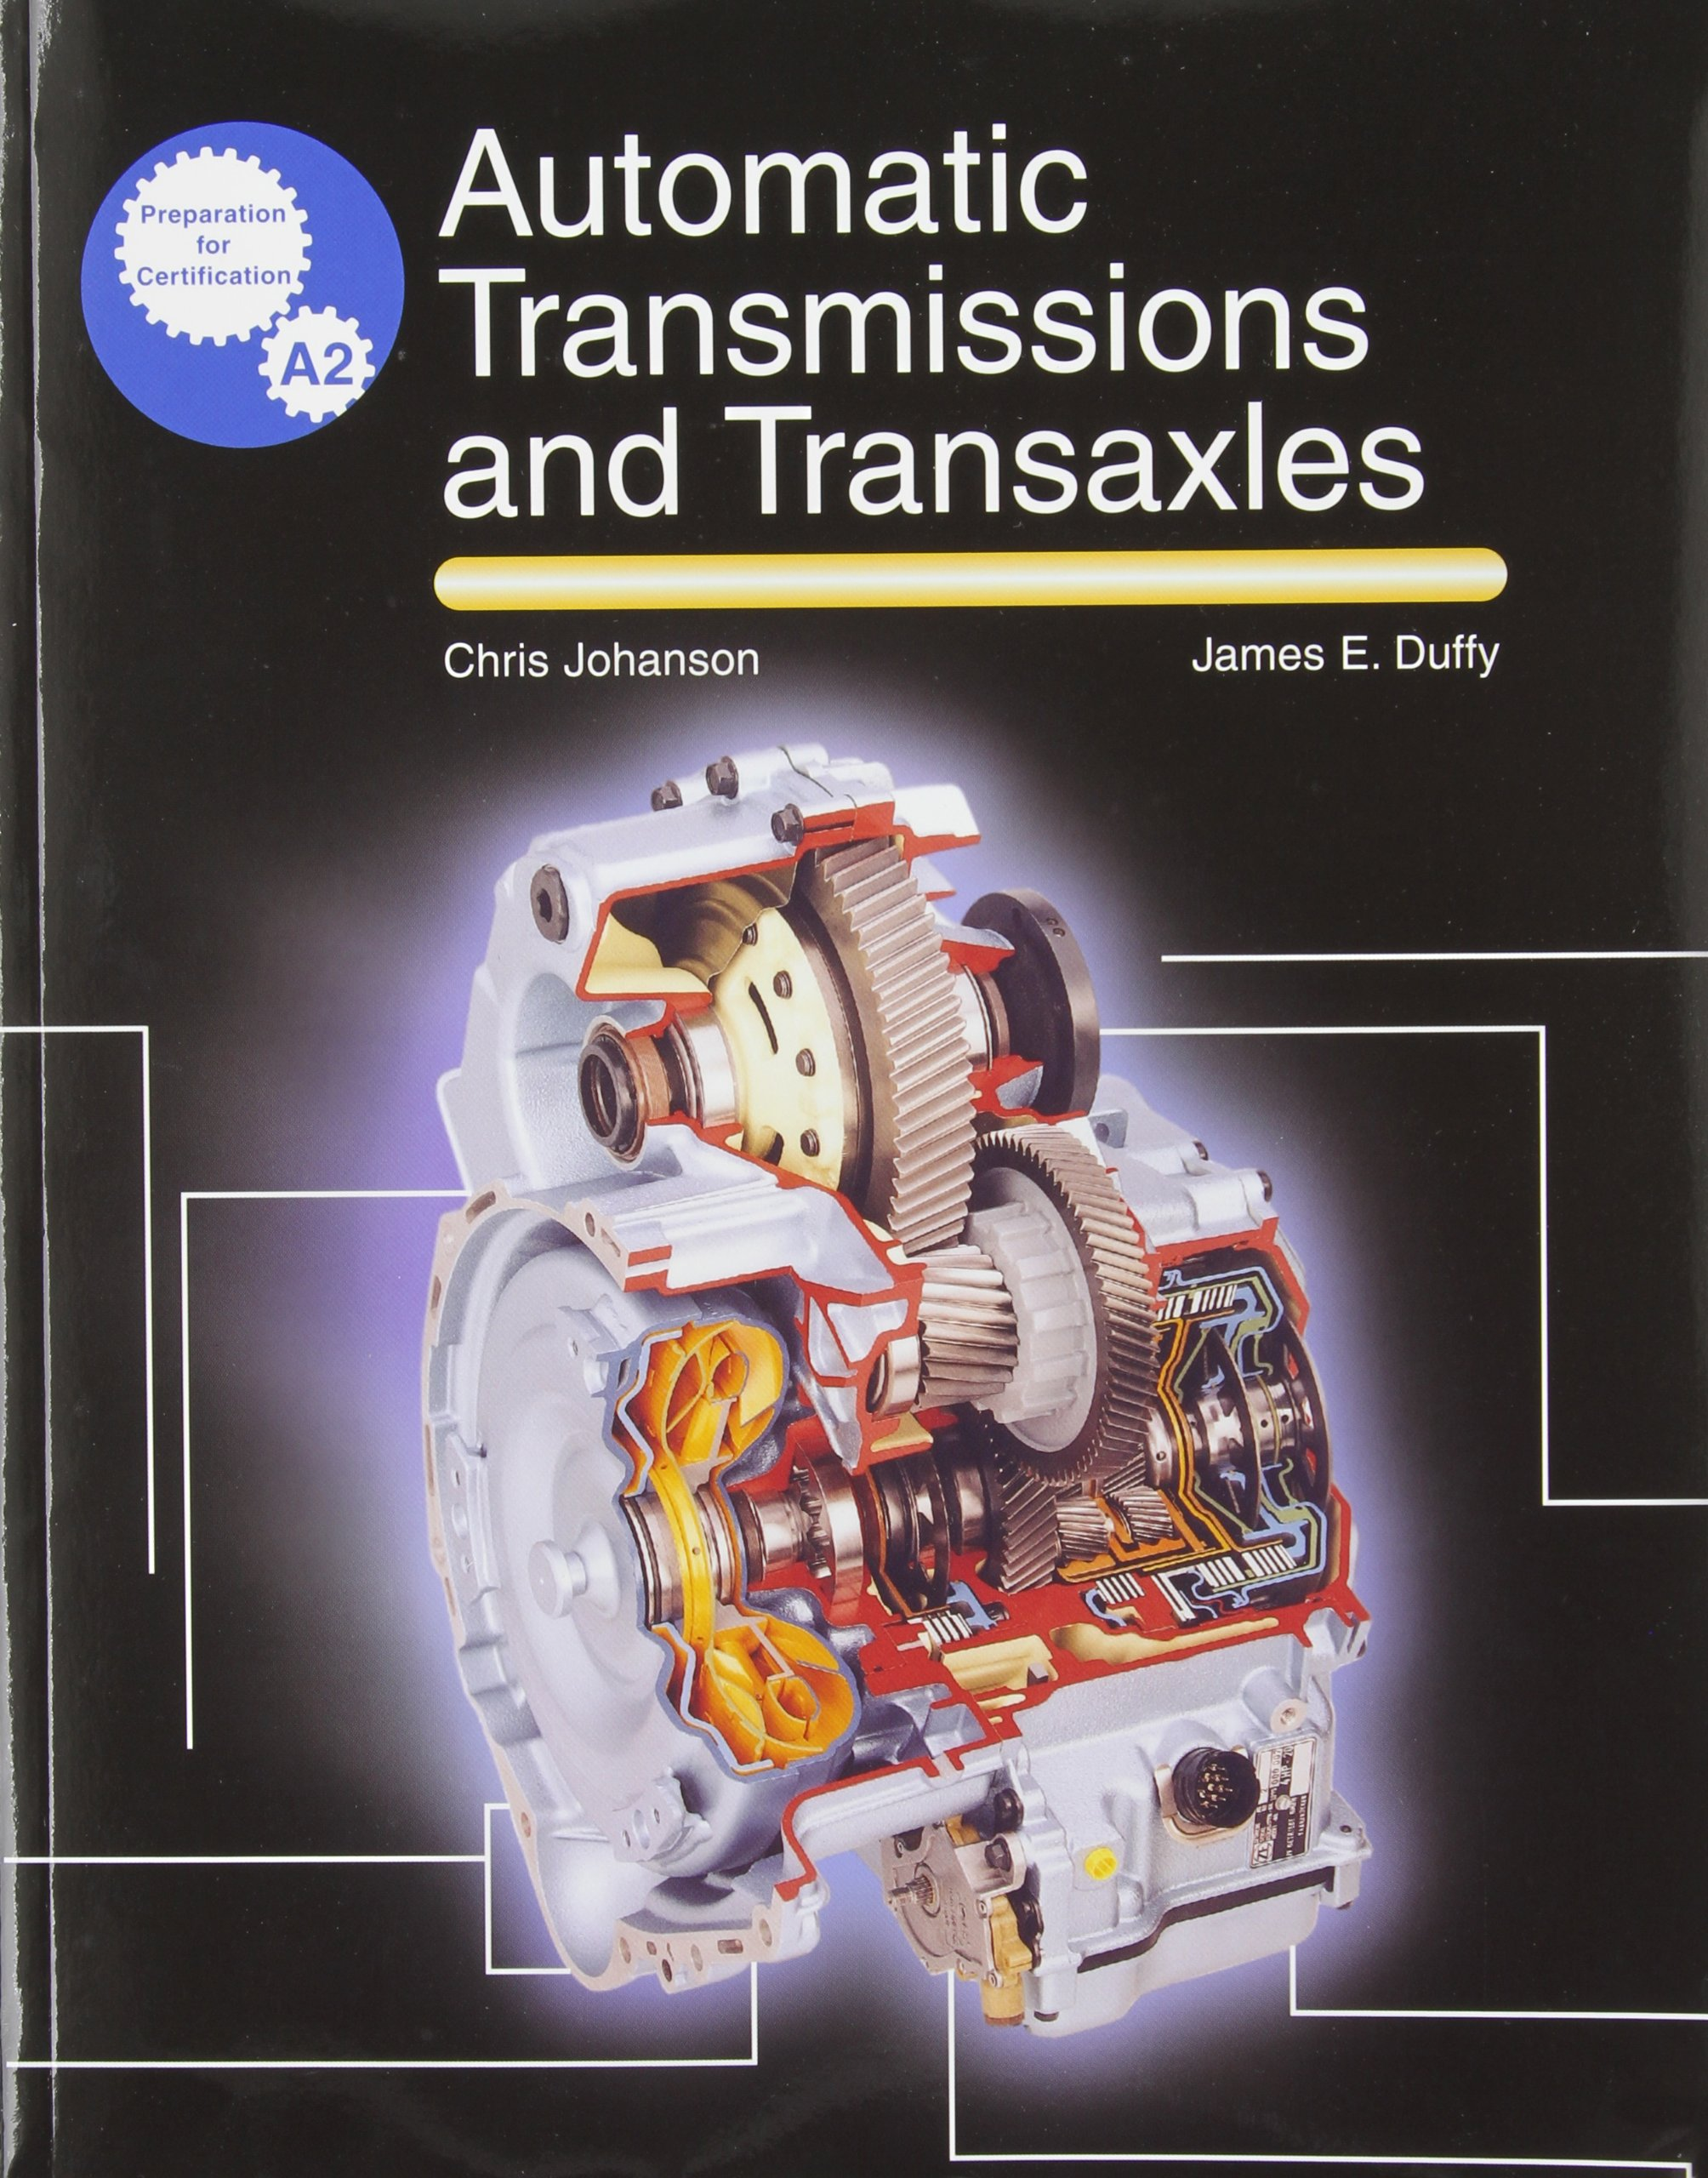 Buy Automatic Transmissions and Transaxles Book Online at Low Prices in  India | Automatic Transmissions and Transaxles Reviews & Ratings - Amazon.in